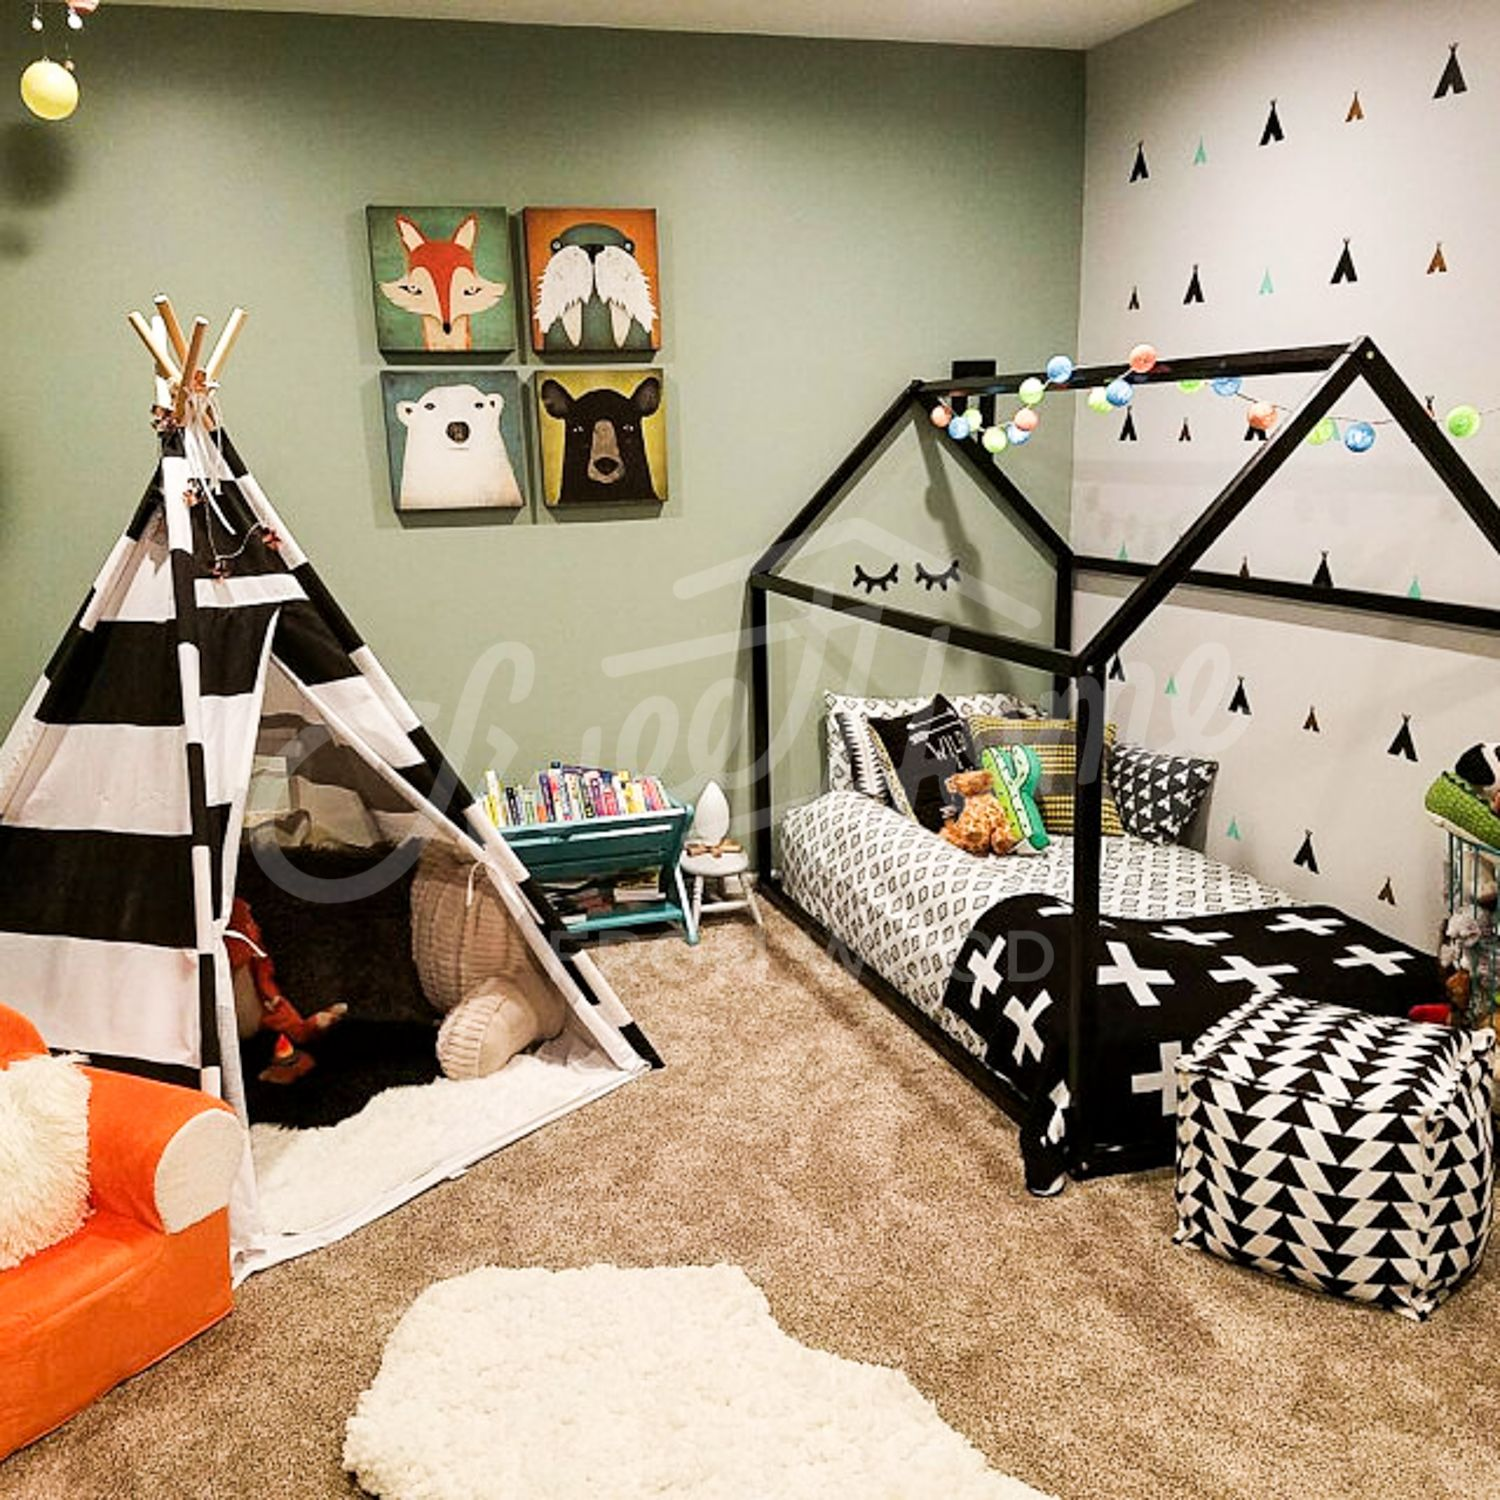 Childrens interior ideas, toddler bed, house bed, tent bed